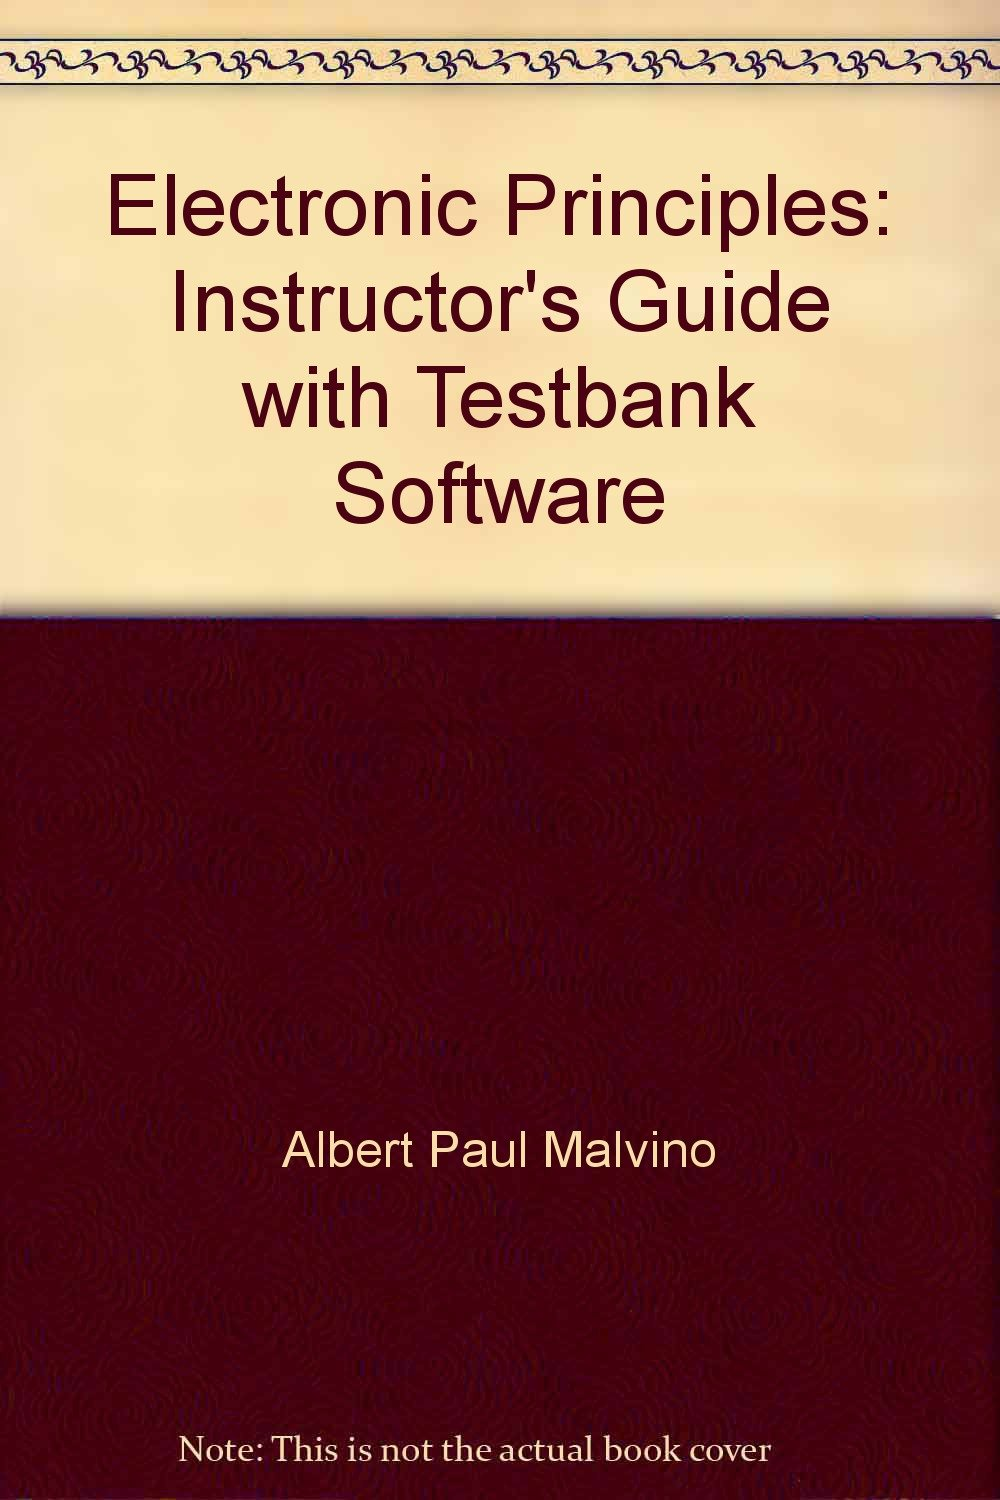 Electronic Principles: Instructor's Guide with Testbank Software: Albert  Paul Malvino: 9780028008493: Amazon.com: Books